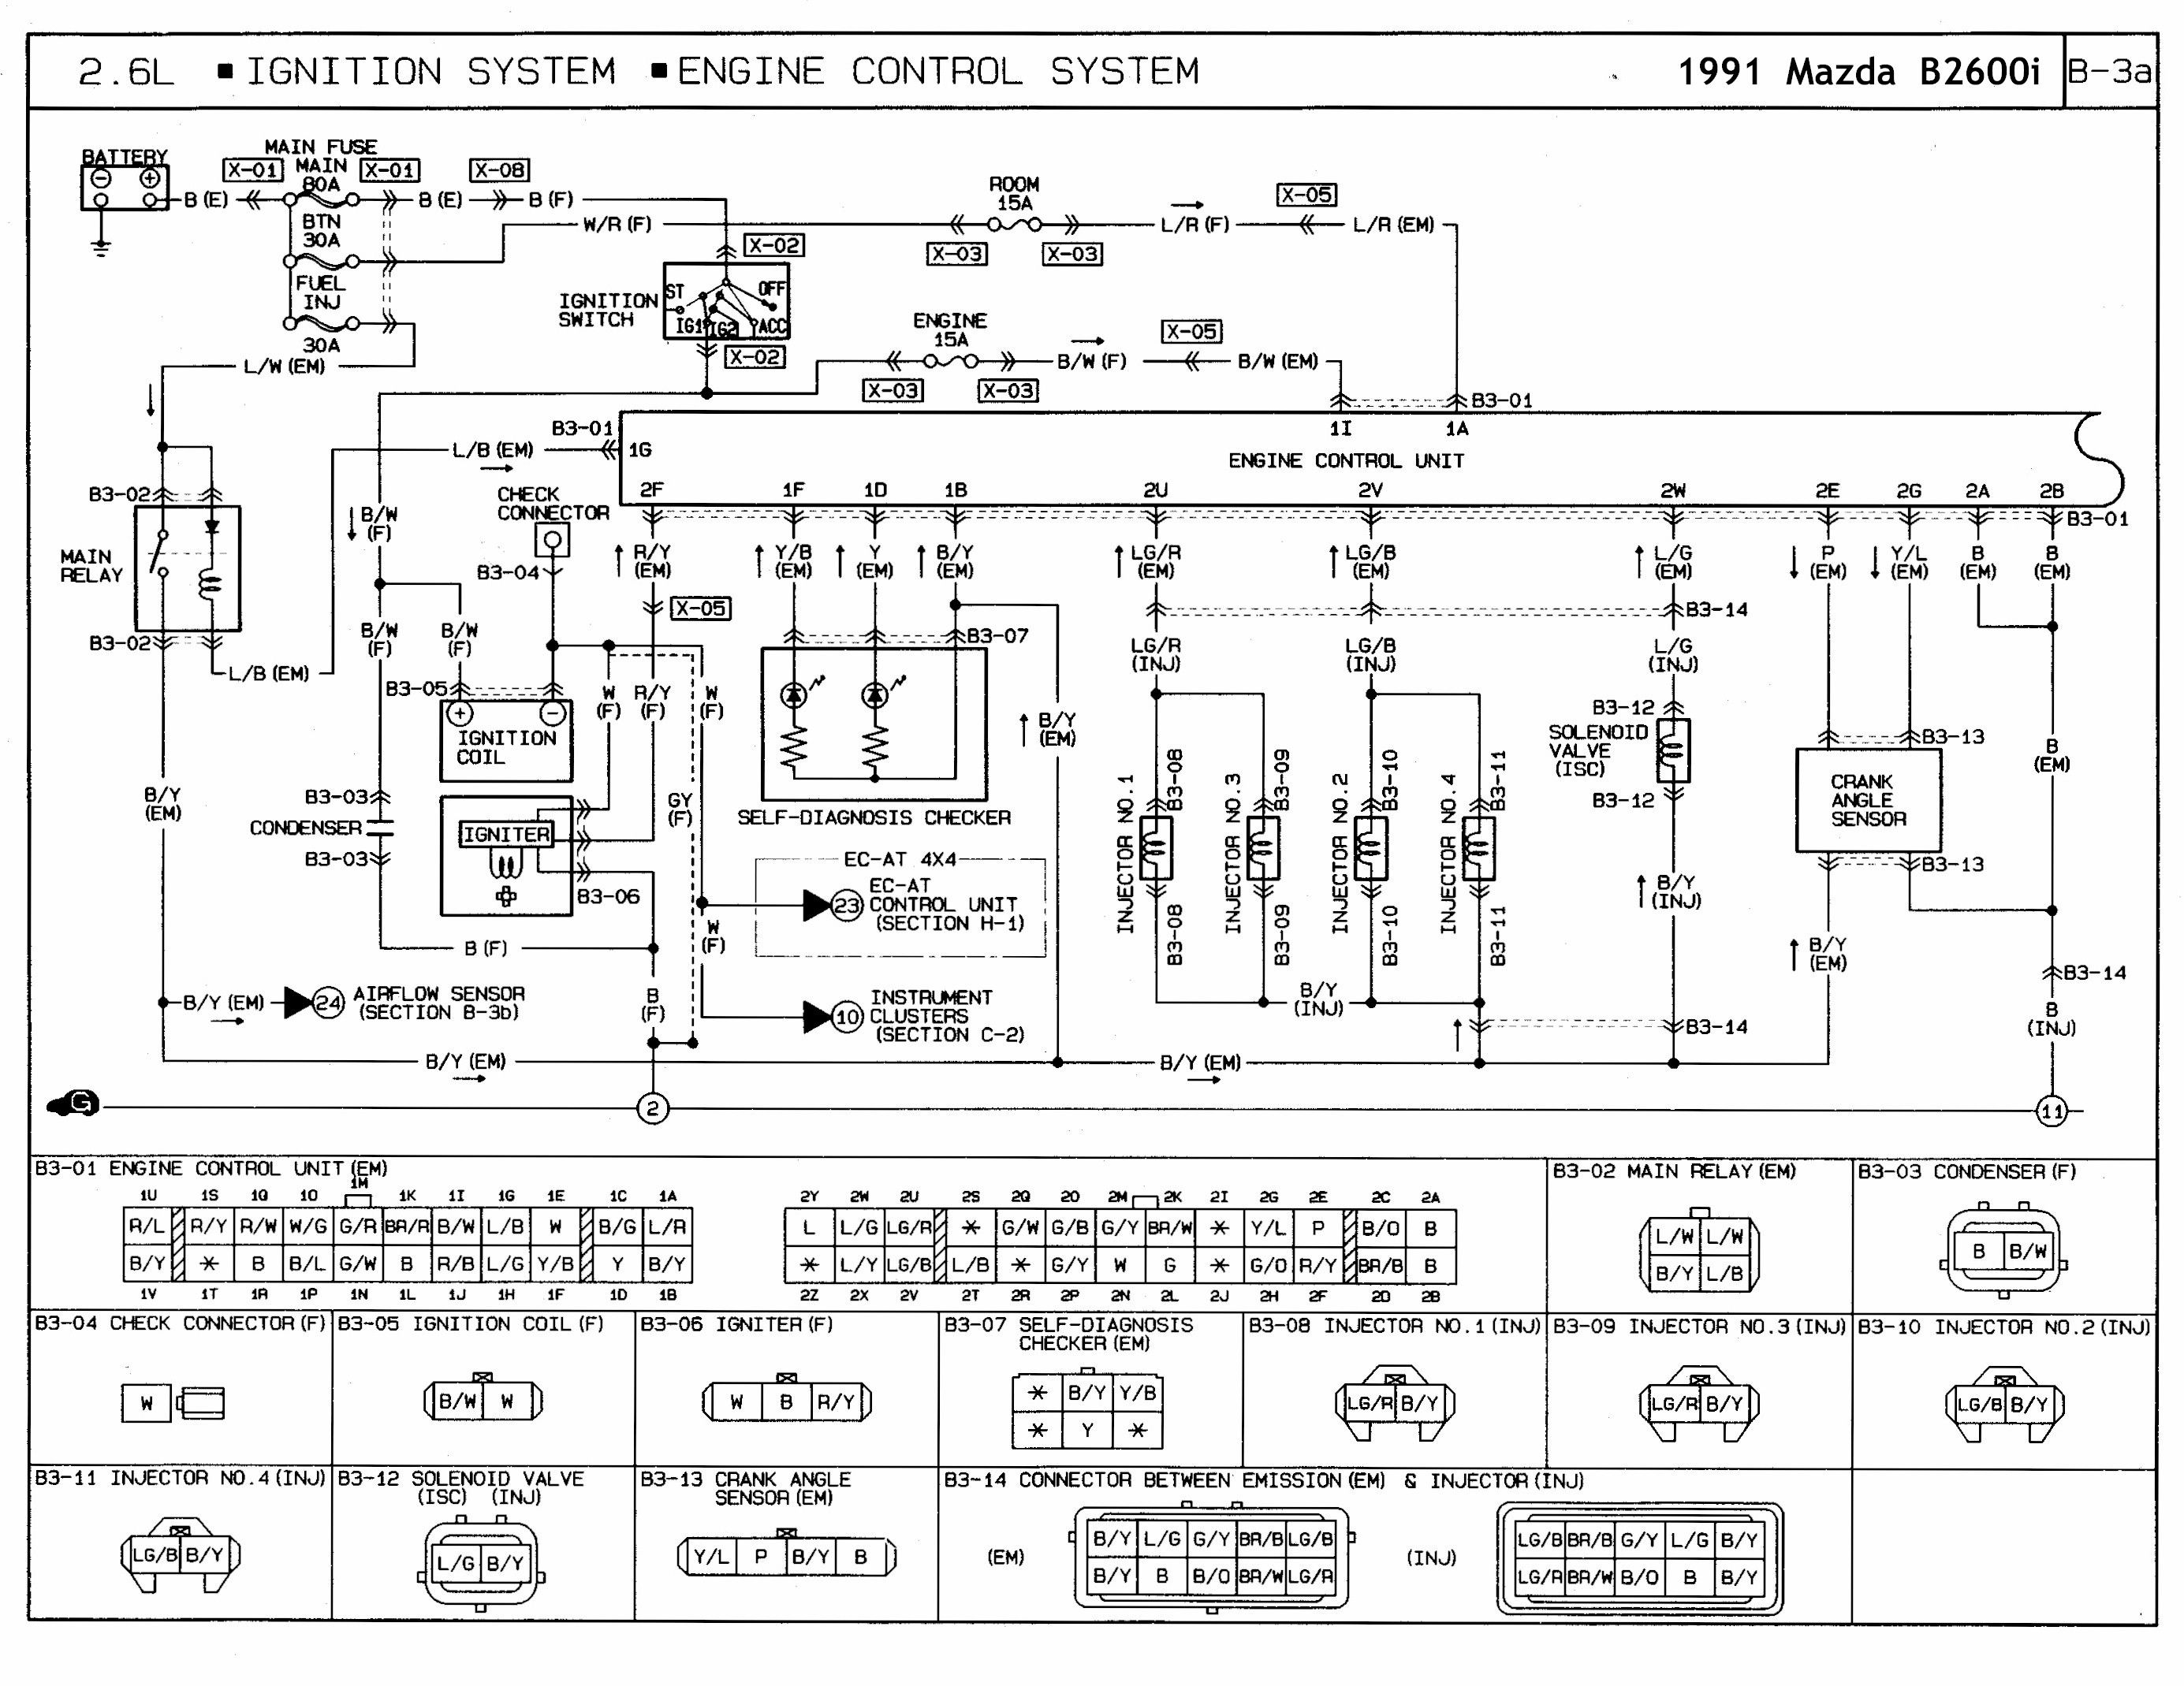 [DIAGRAM_5NL]  1991 Mazda B2600i Engine Control Wiring Diagram in 2020 | Electrical wiring  diagram, Ignition system, Diagram | Mazda Bravo Ignition Wiring Diagram |  | Pinterest